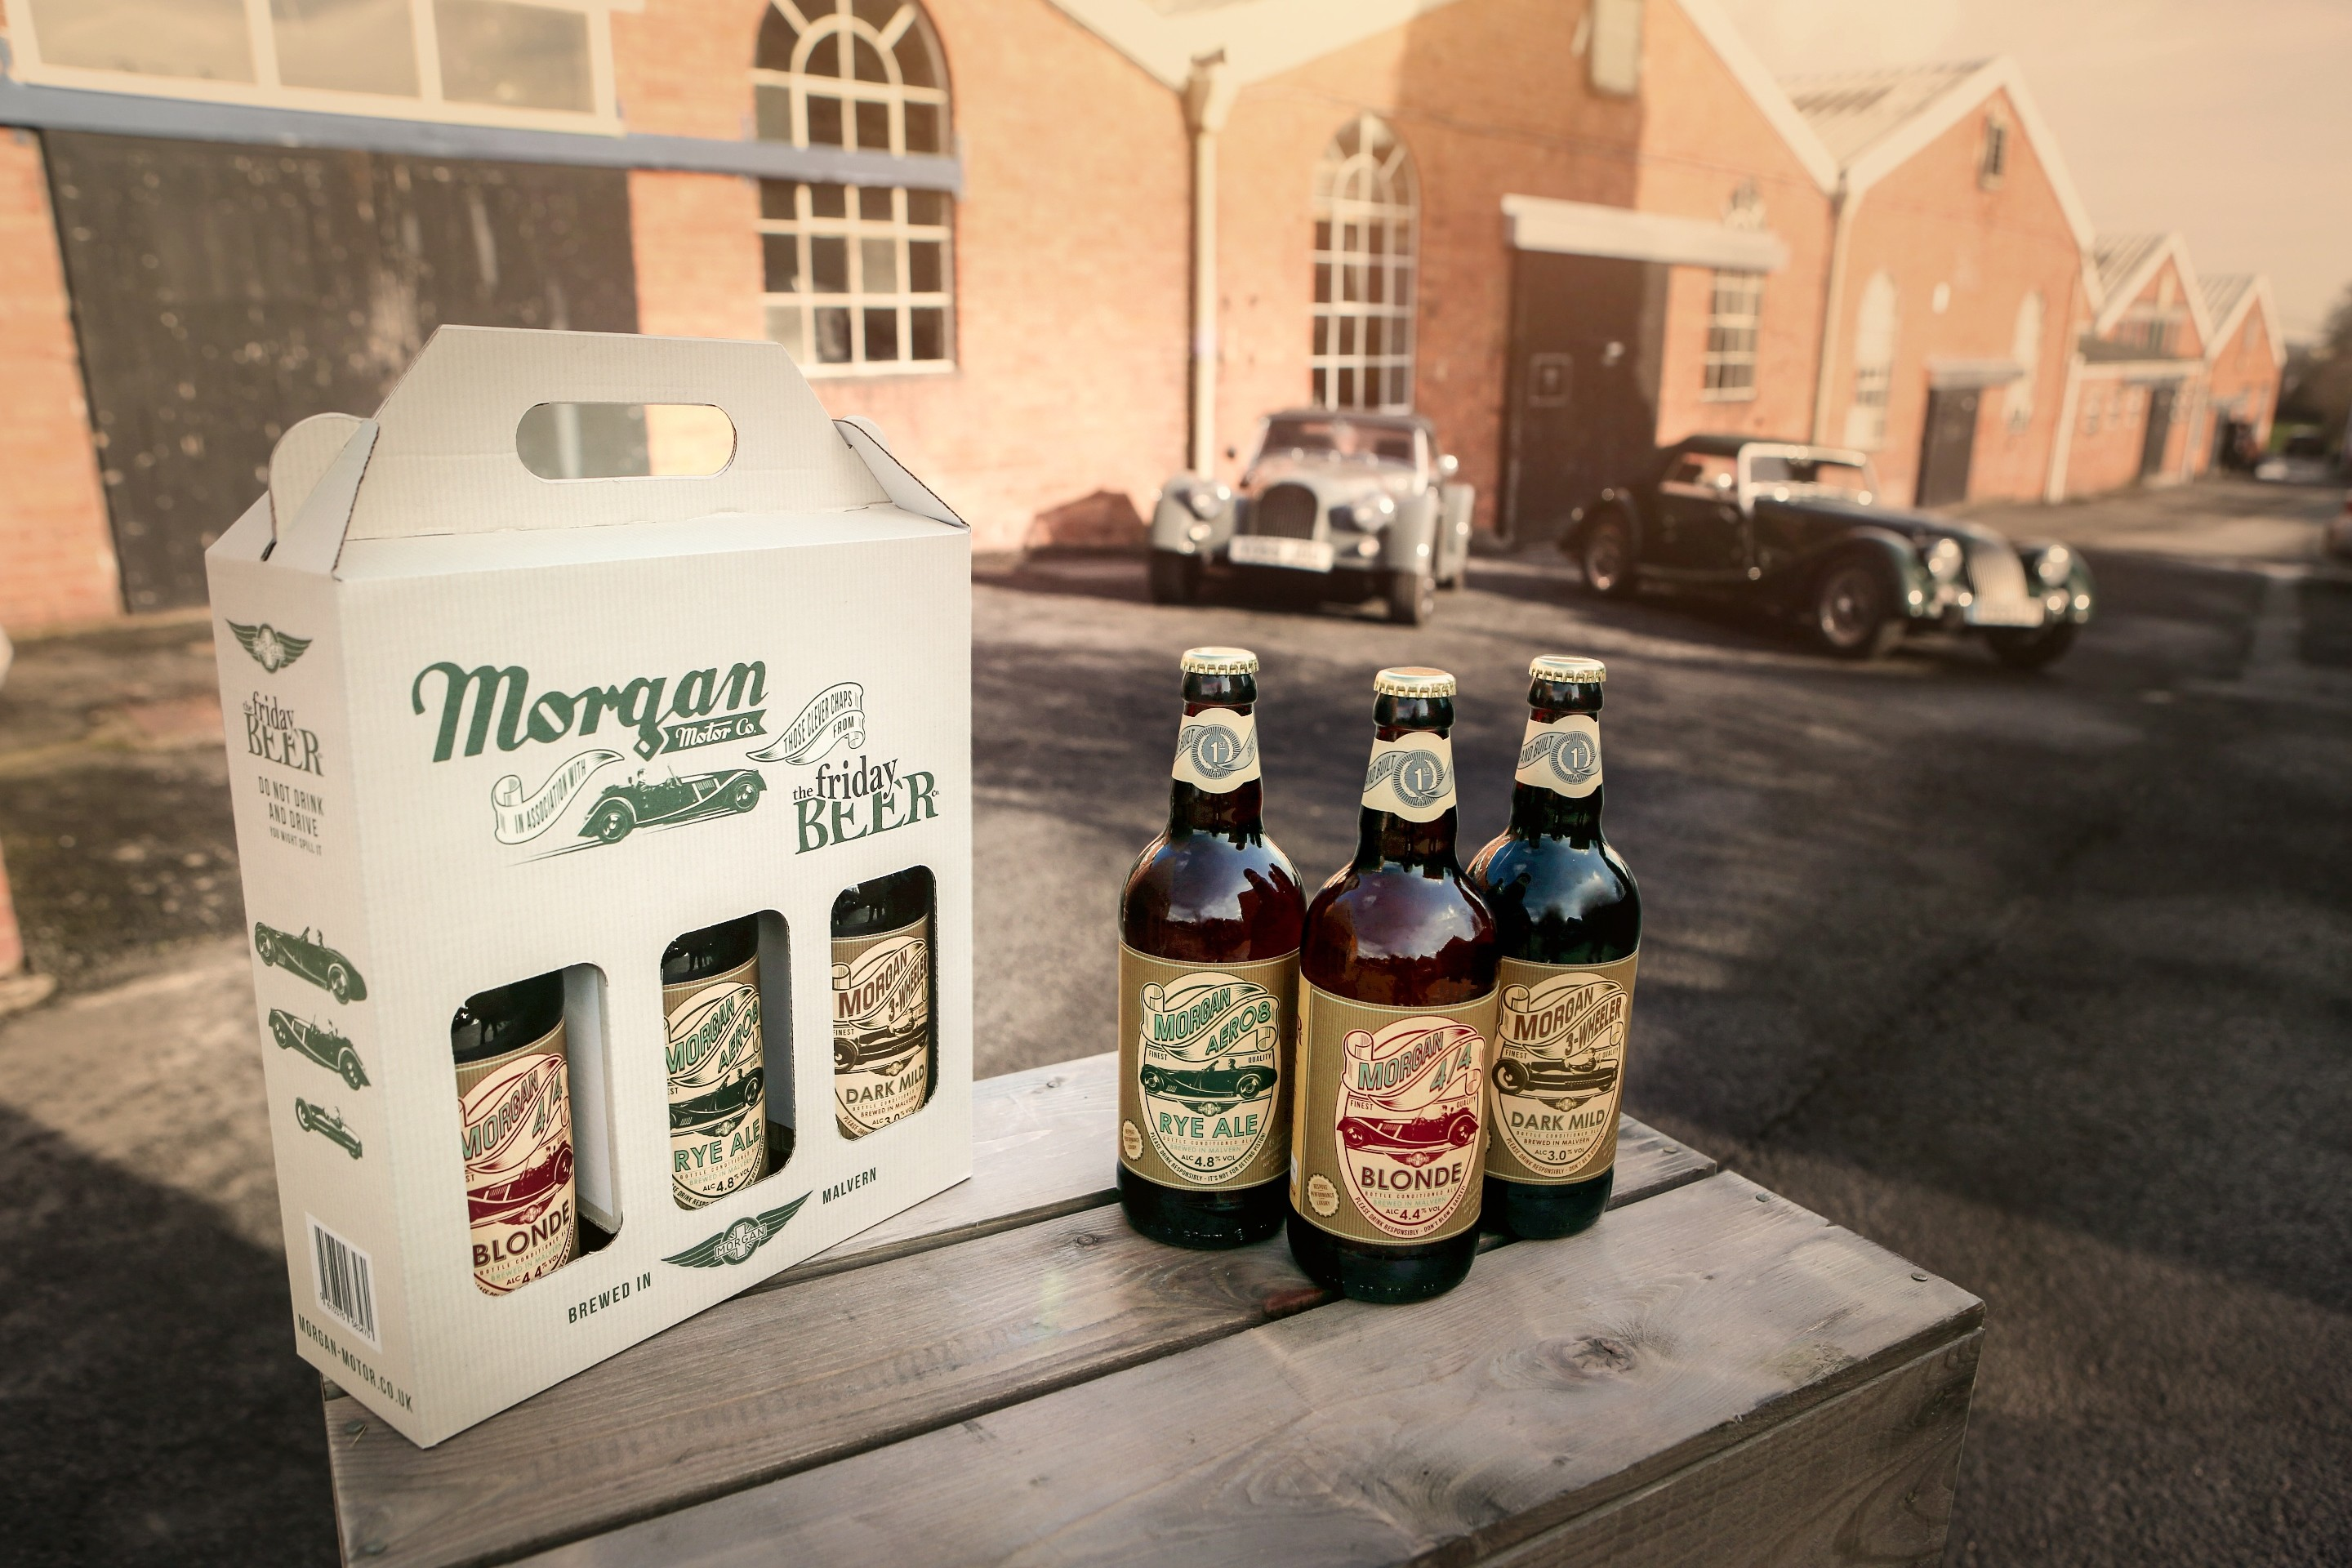 Morgan_Beer_0004